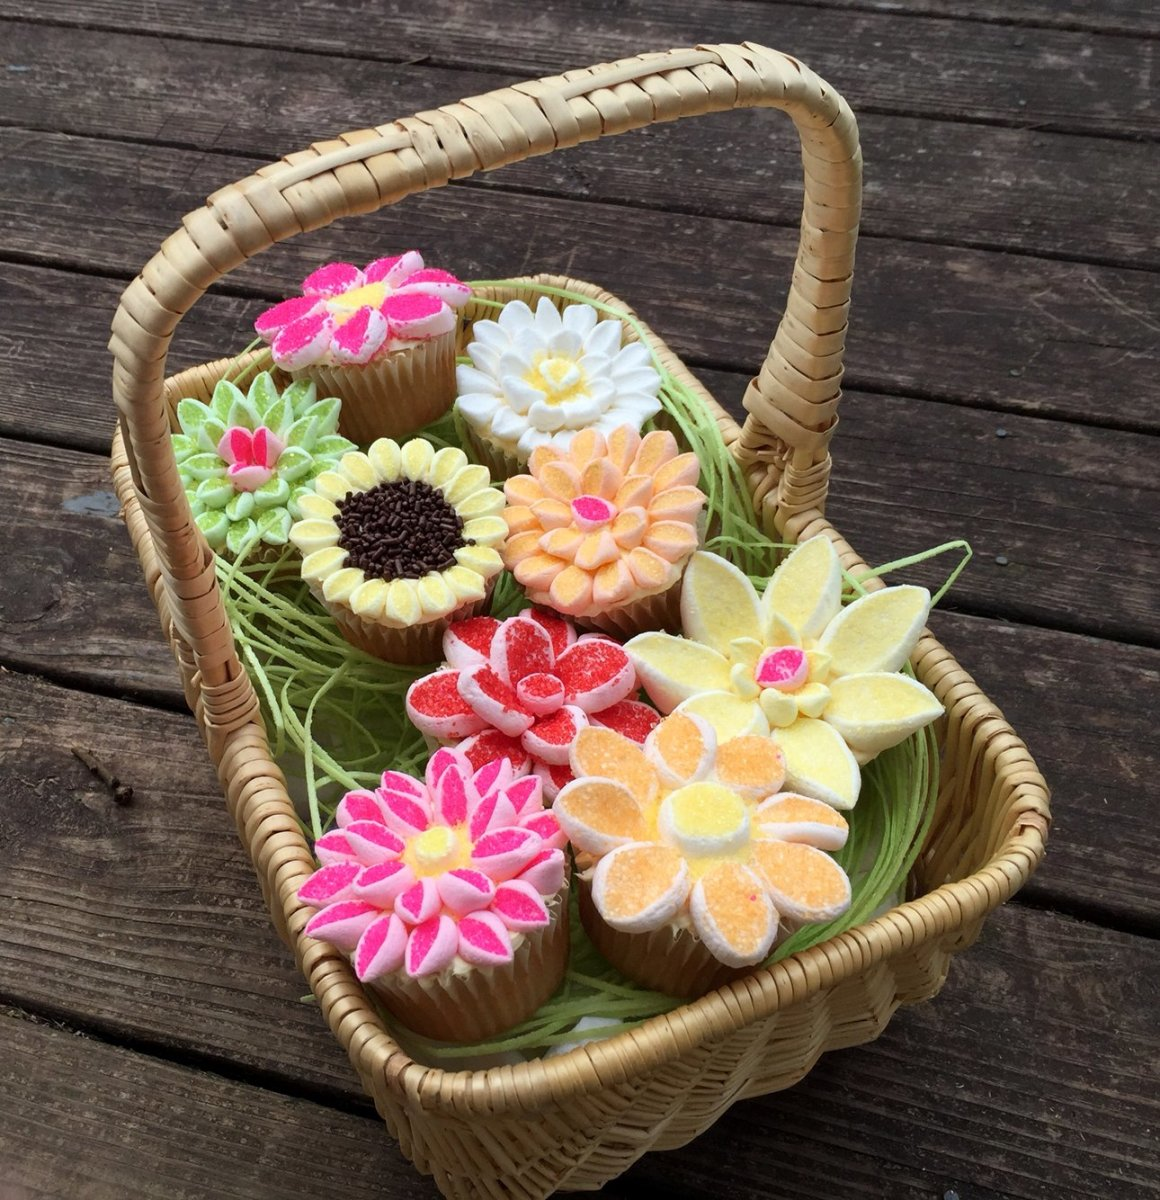 Marshmallow decorated cupcakes that look like pretty flowers are perfect substitute for a Mother's Day bouquet.